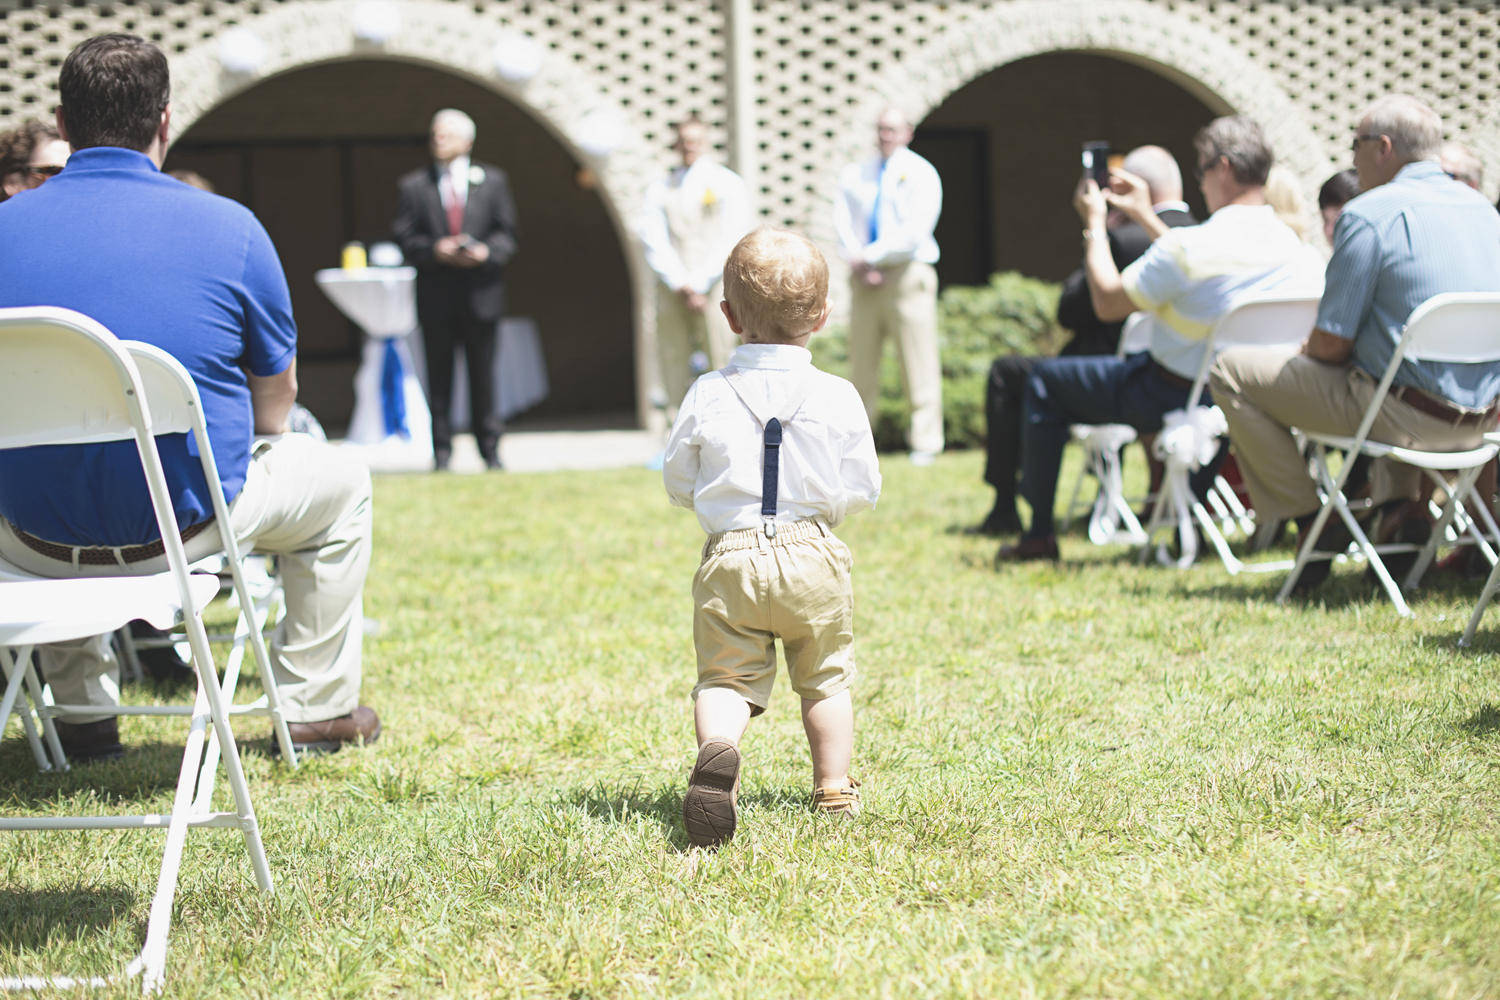 Mariners Museum Wedding | Newport News, Virginia |  Ring bearer